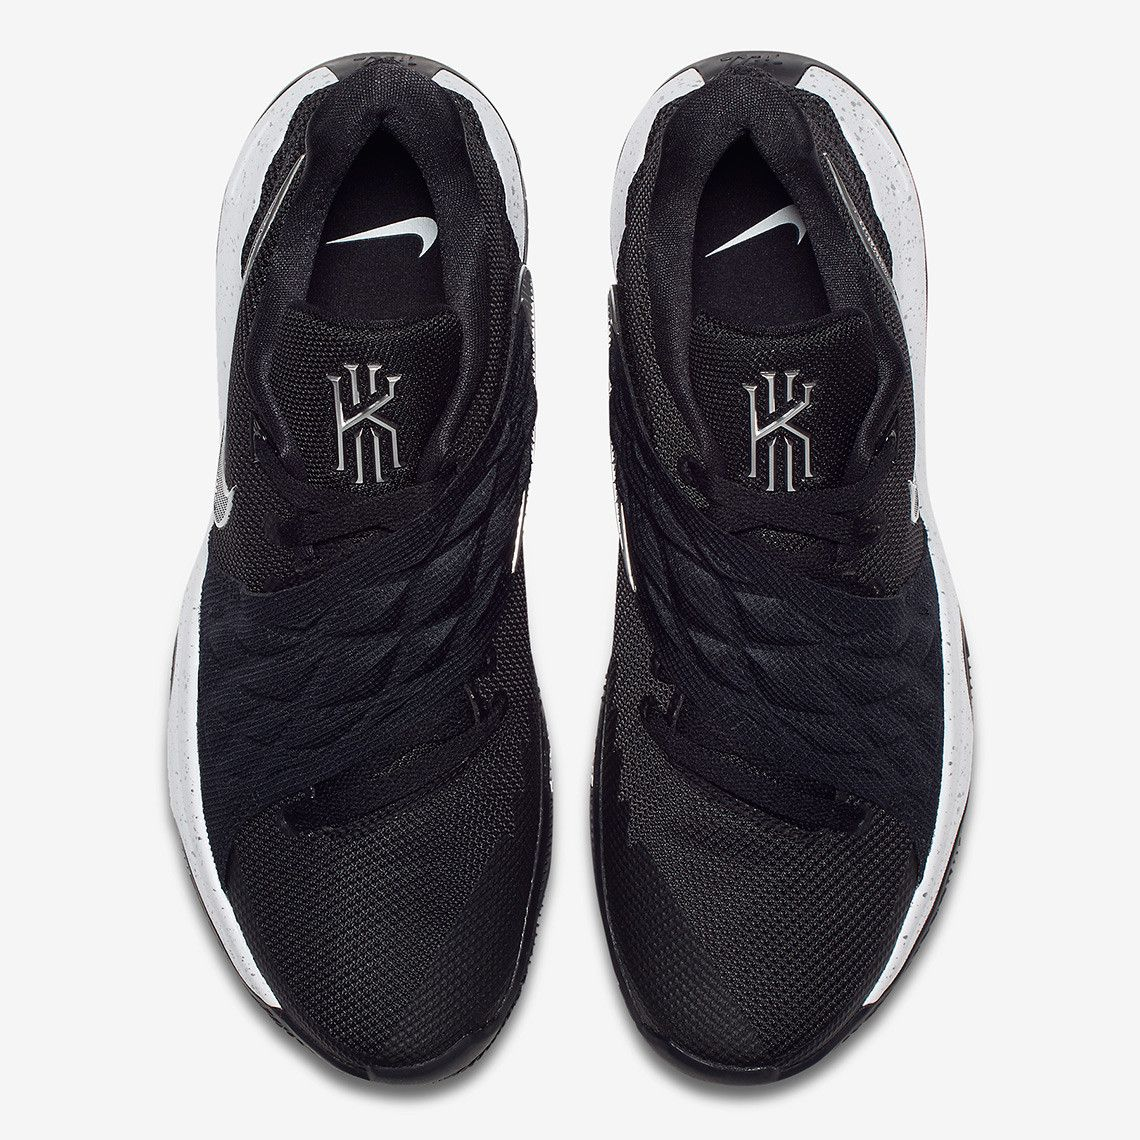 Kyrie irving shoes, Nike kyrie, Irving